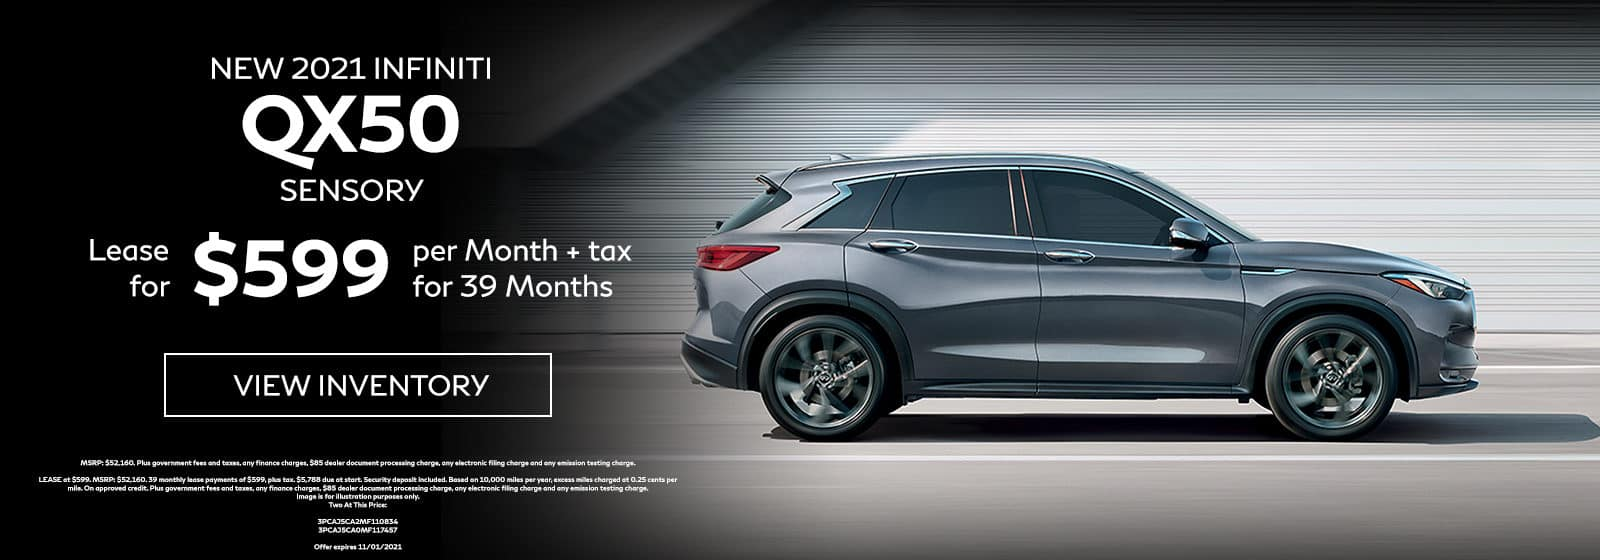 New 2021 INFINITI QX50 SENSORY. Lease for $599 Per Month + Tax for 39 Months